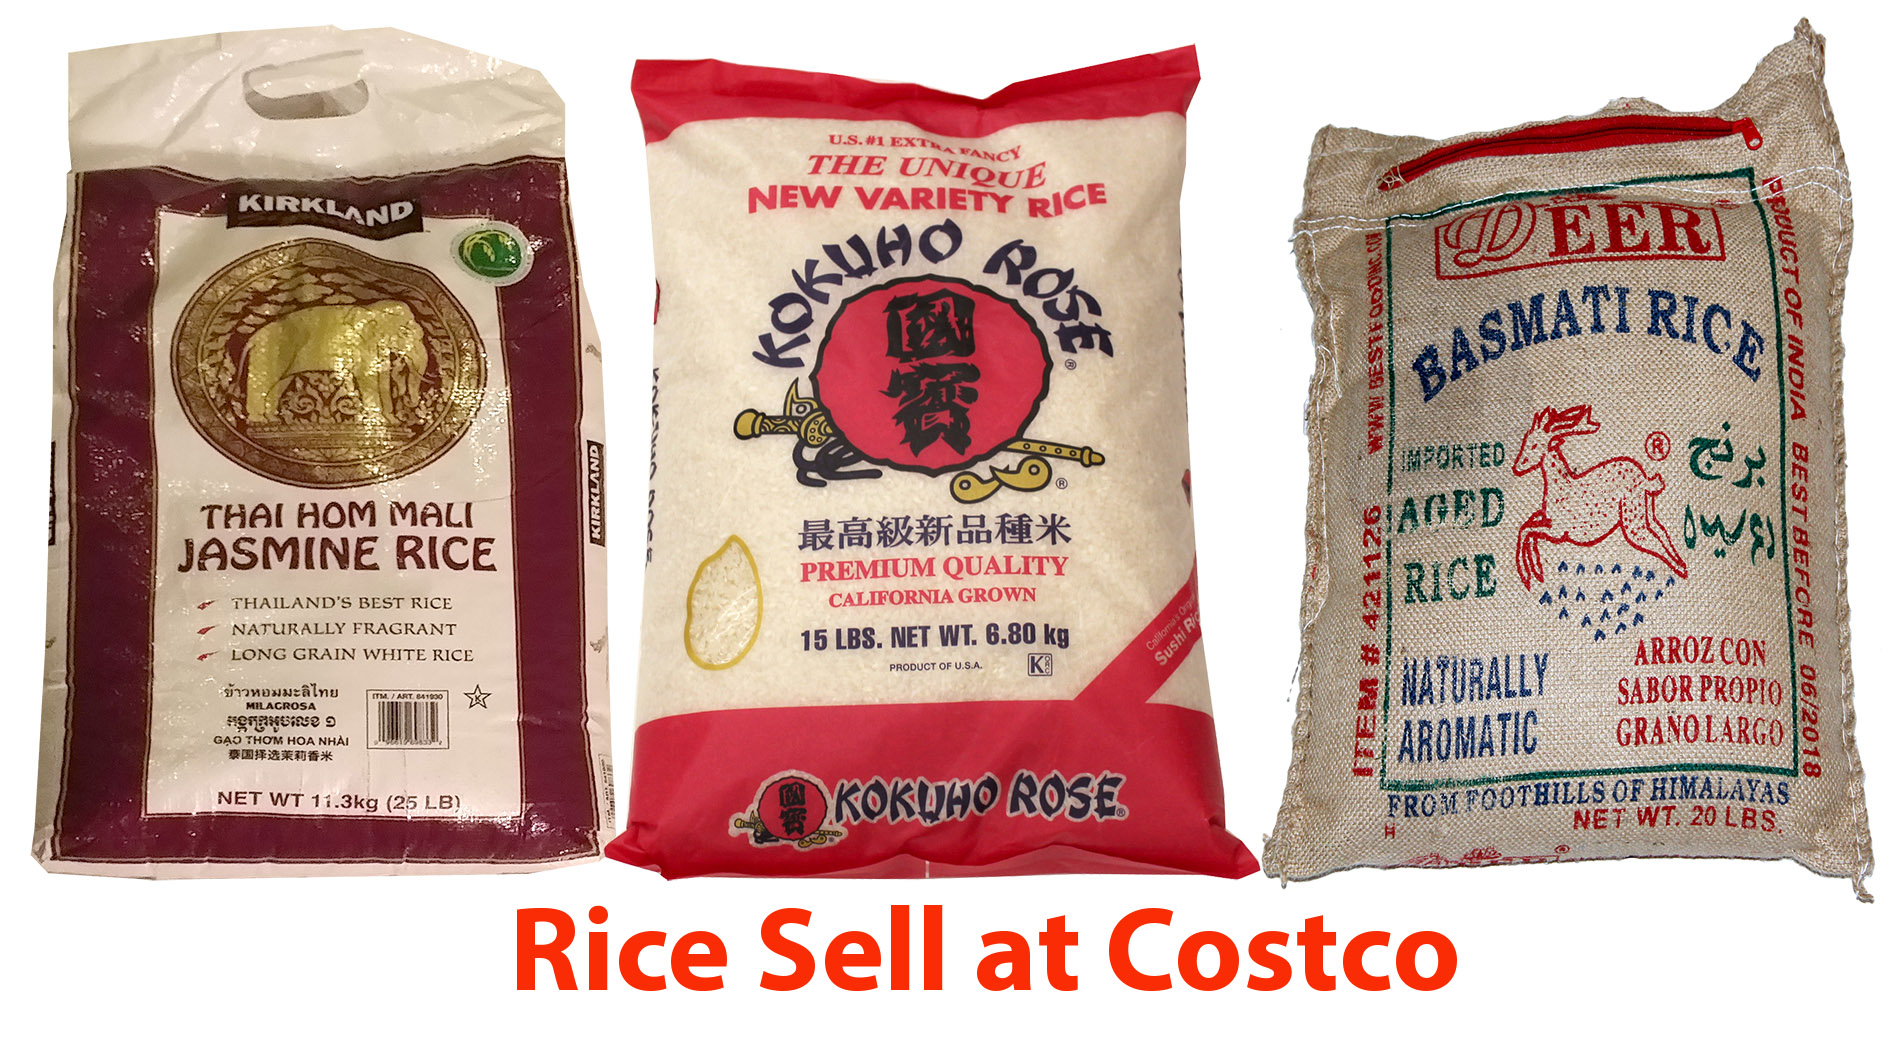 White Asian Rices in Costco